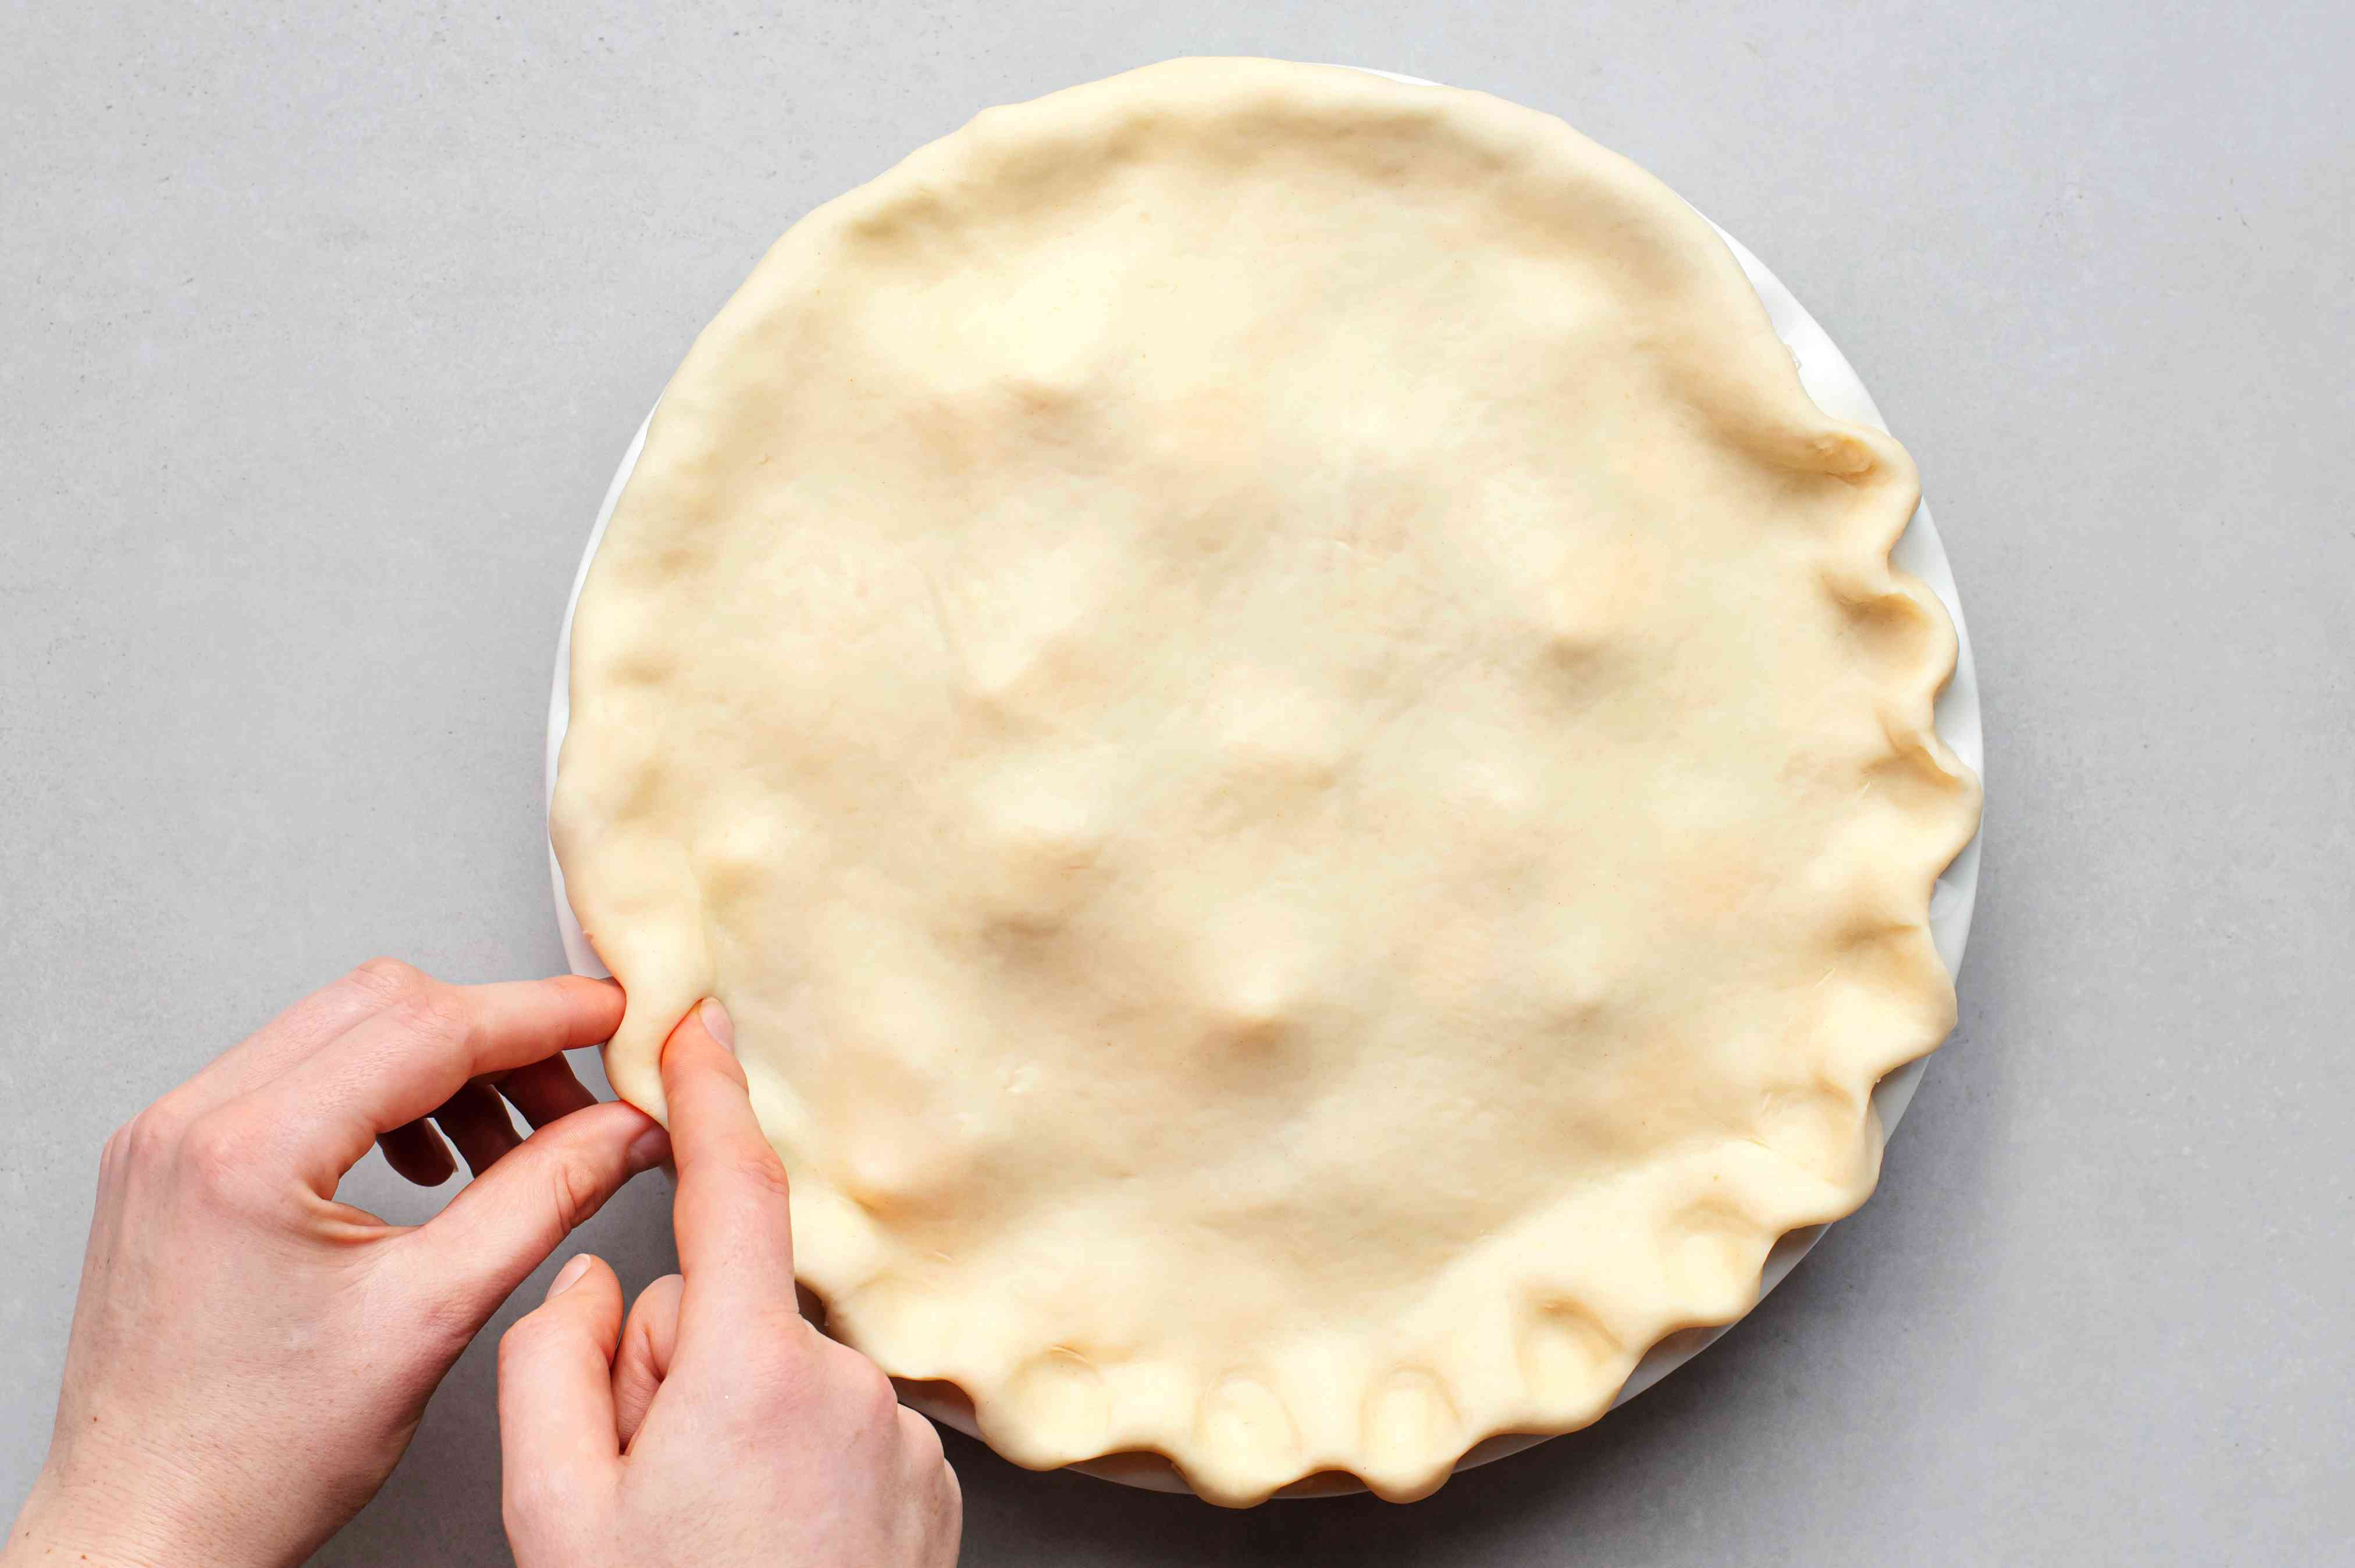 Place the second crust on top and crimp the edges